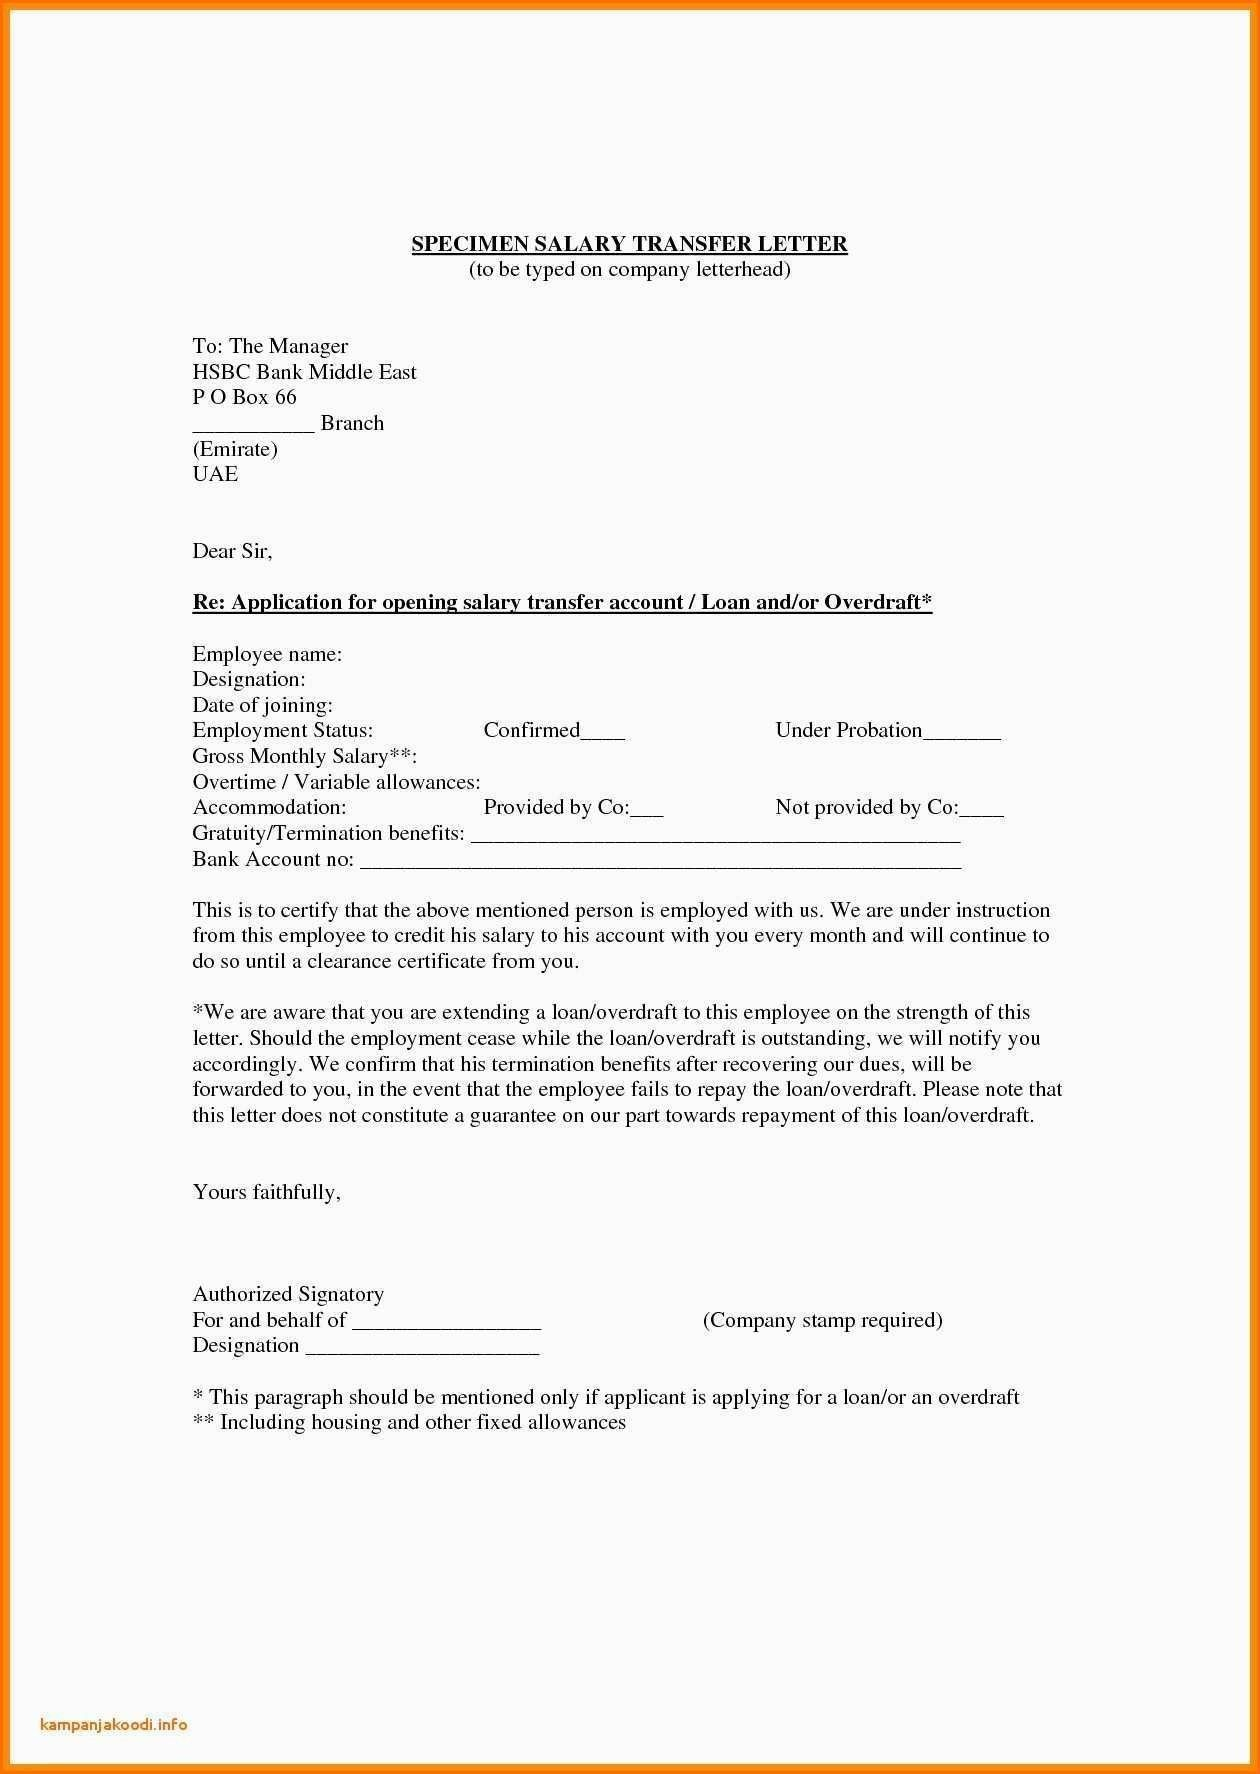 federal student, blank business, print out eminent finance, free personal, free print, uniform residential, sample small, bank america car, on salary loan application form